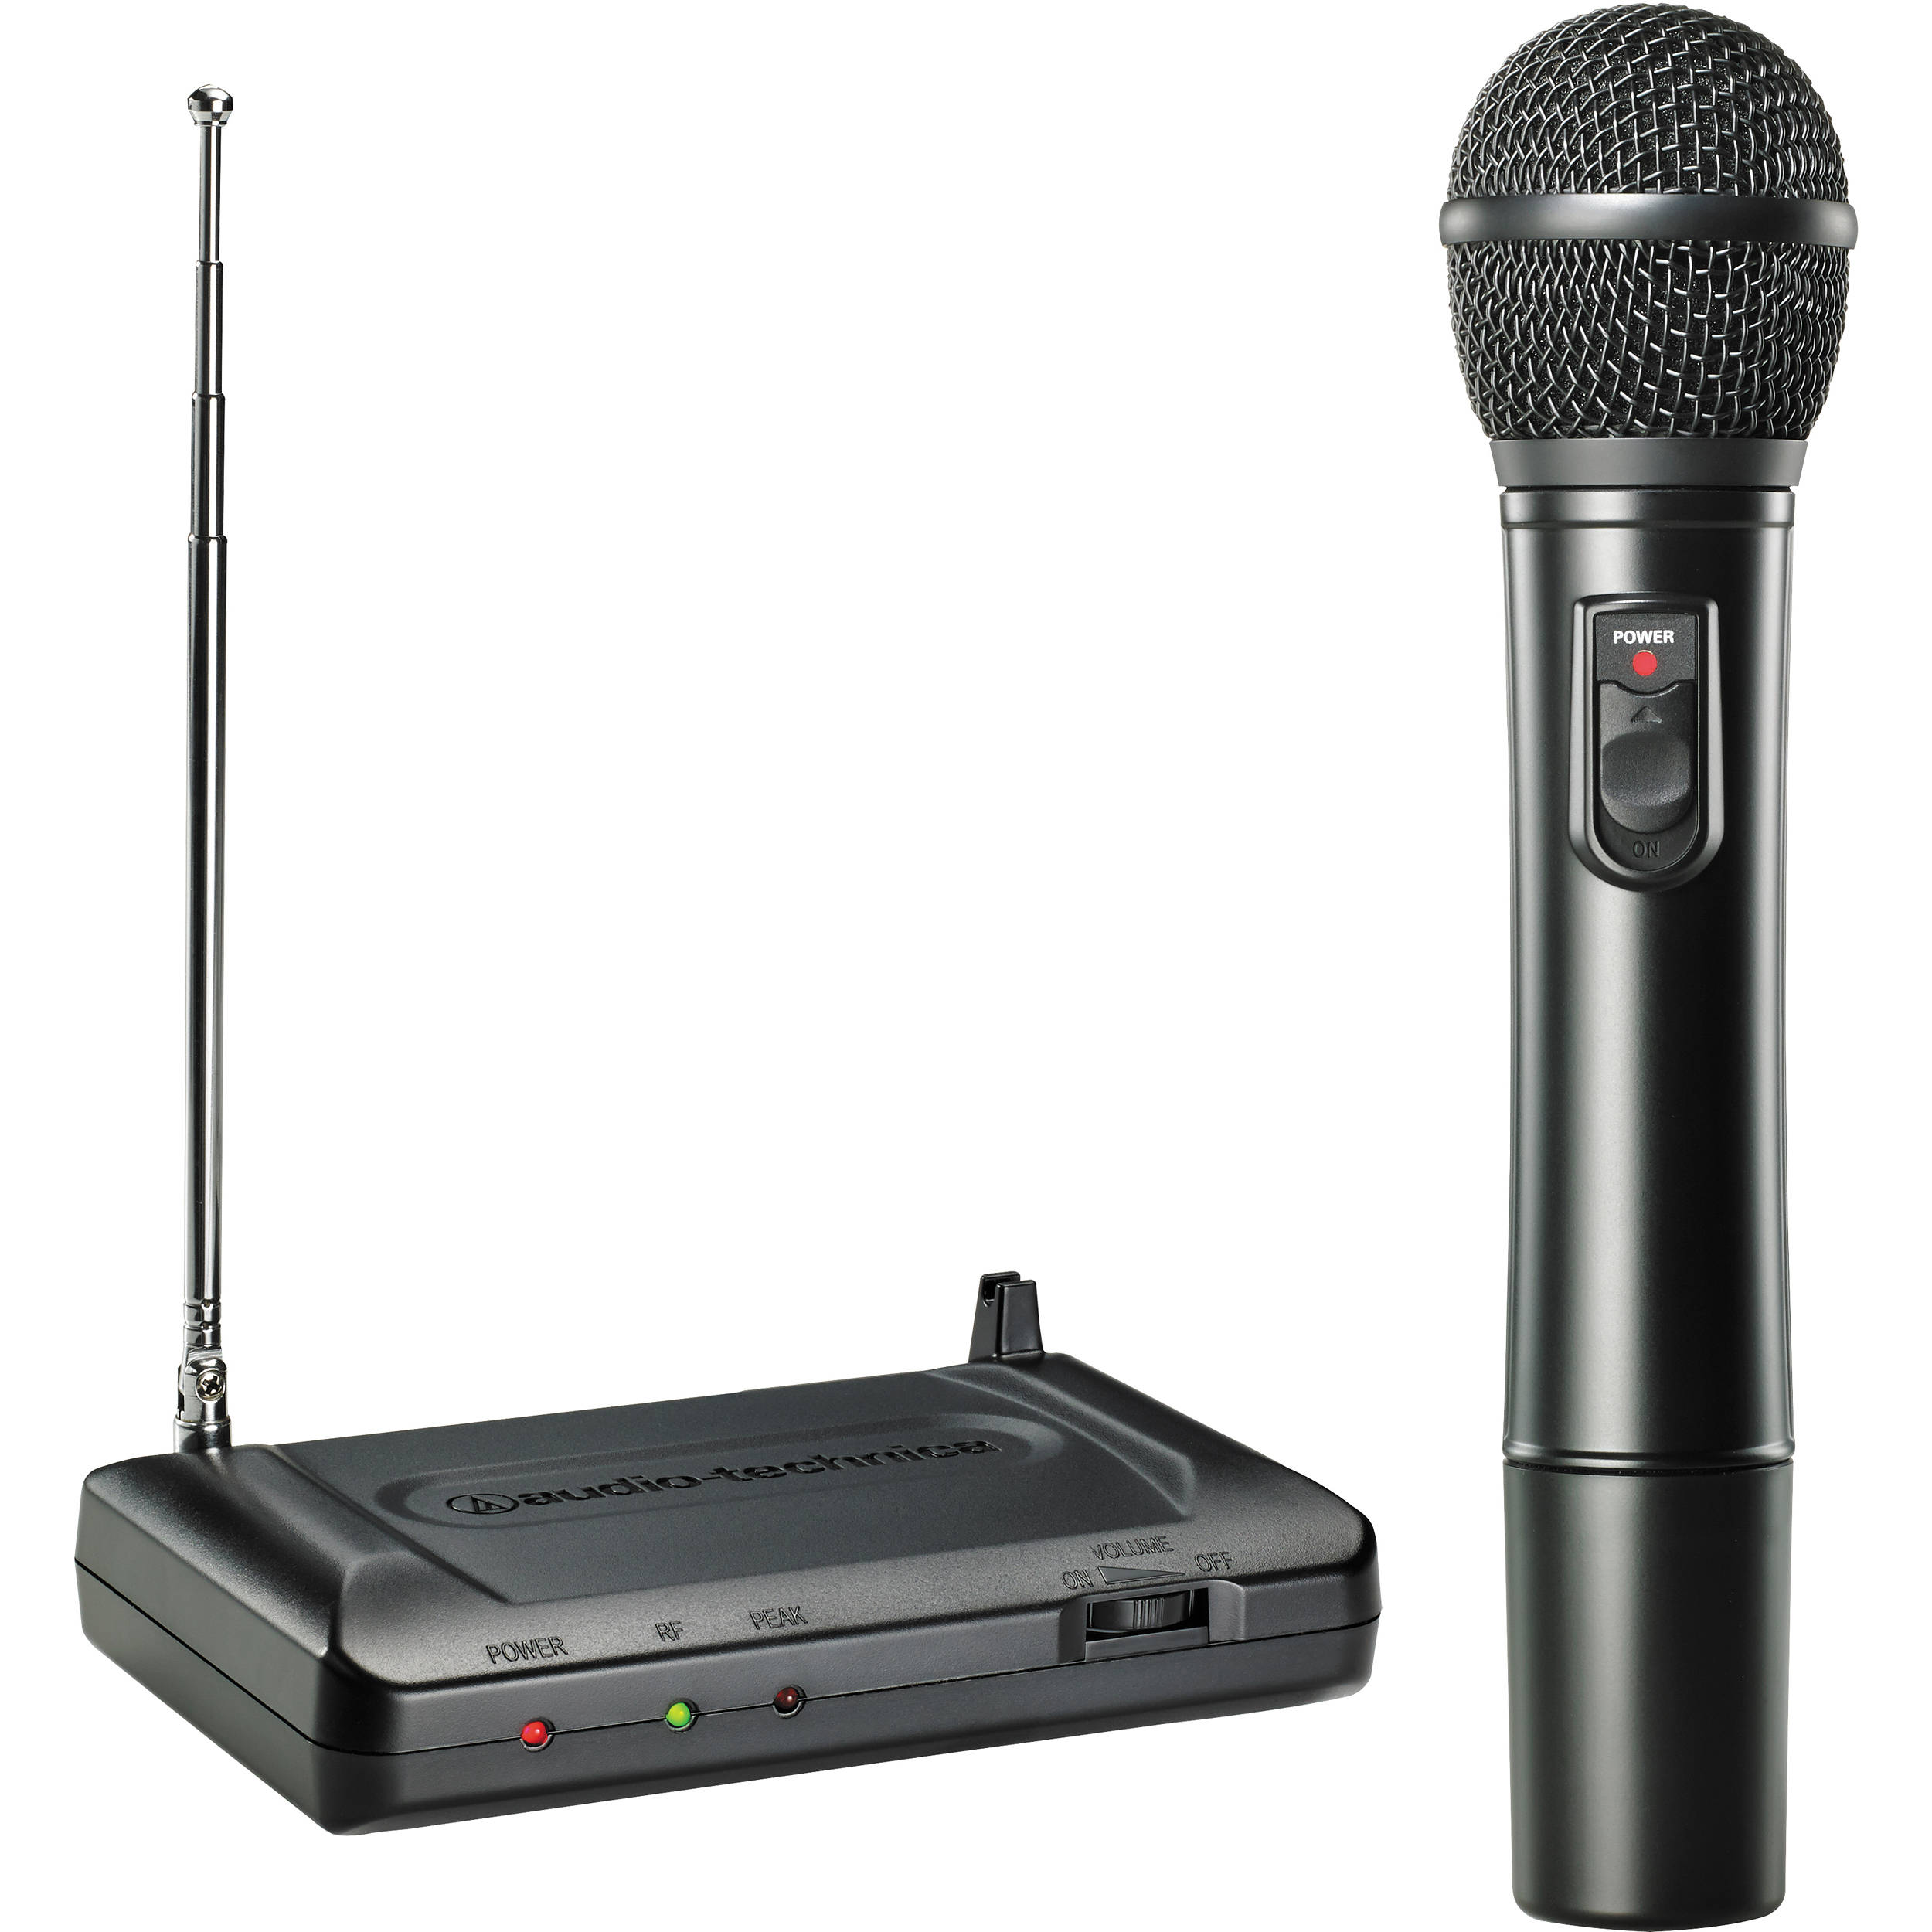 audio technica consumer atr7200 vhf wireless handheld atr7200 t8. Black Bedroom Furniture Sets. Home Design Ideas